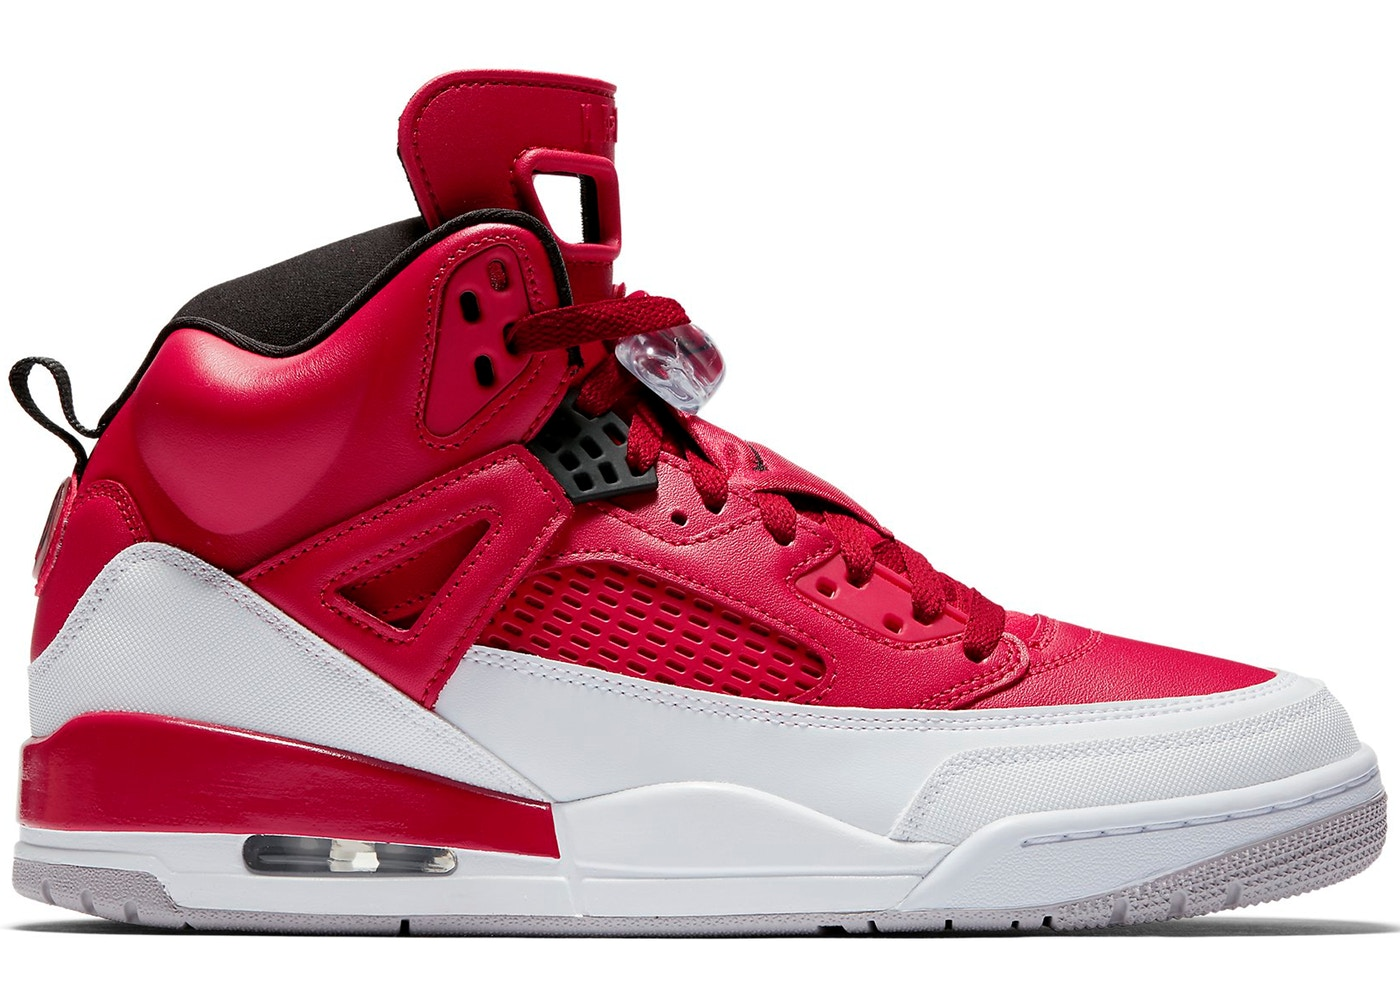 new concept 44365 6bc87 Jordan Spizike Gym Red - 315371-603